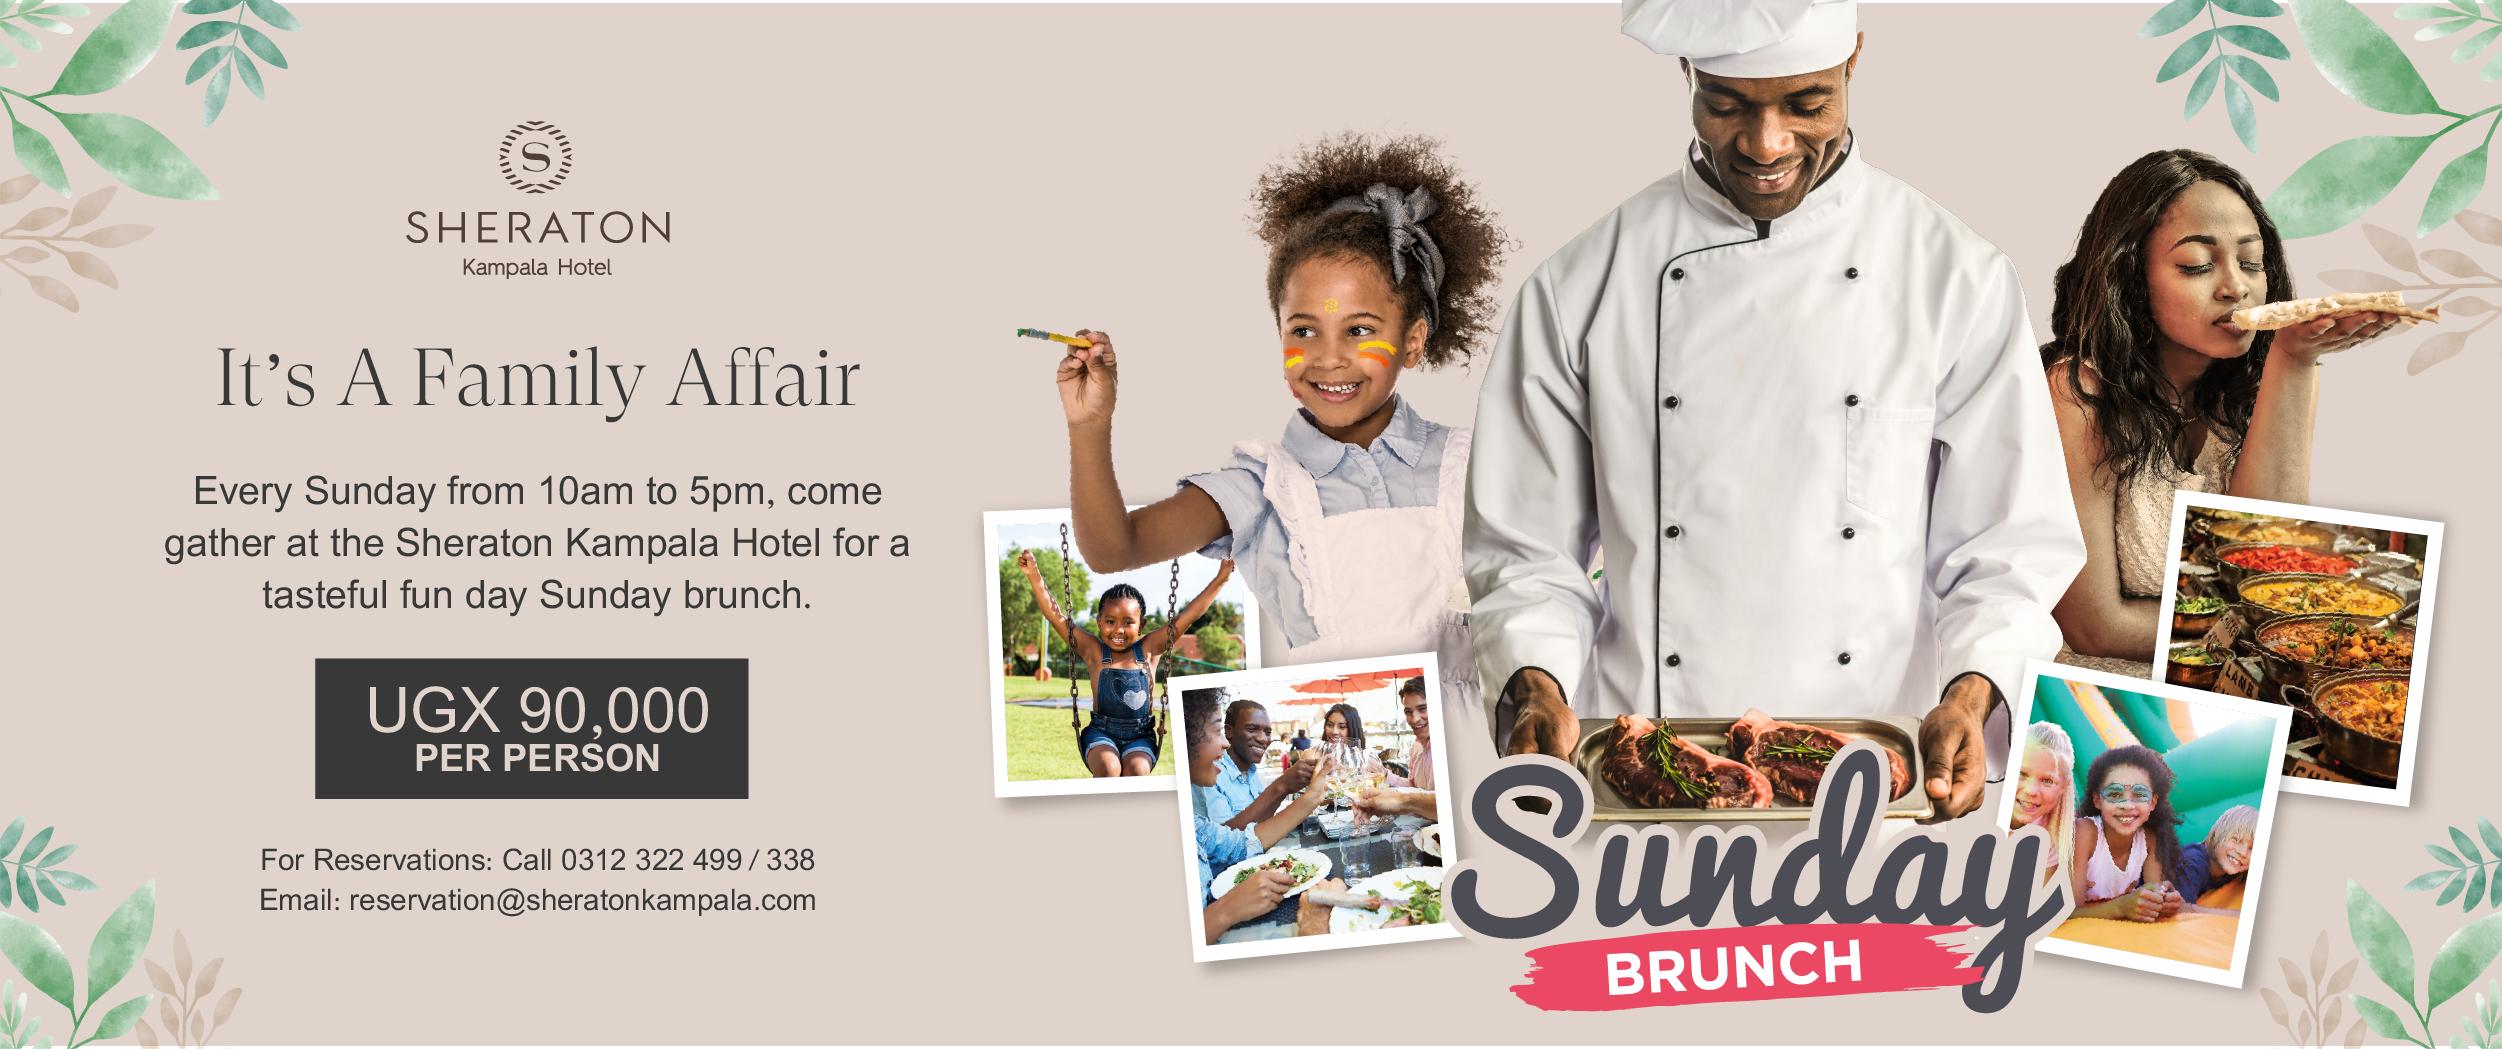 Sunday Brunch at the Sheraton Kampala Hotel is a family affair